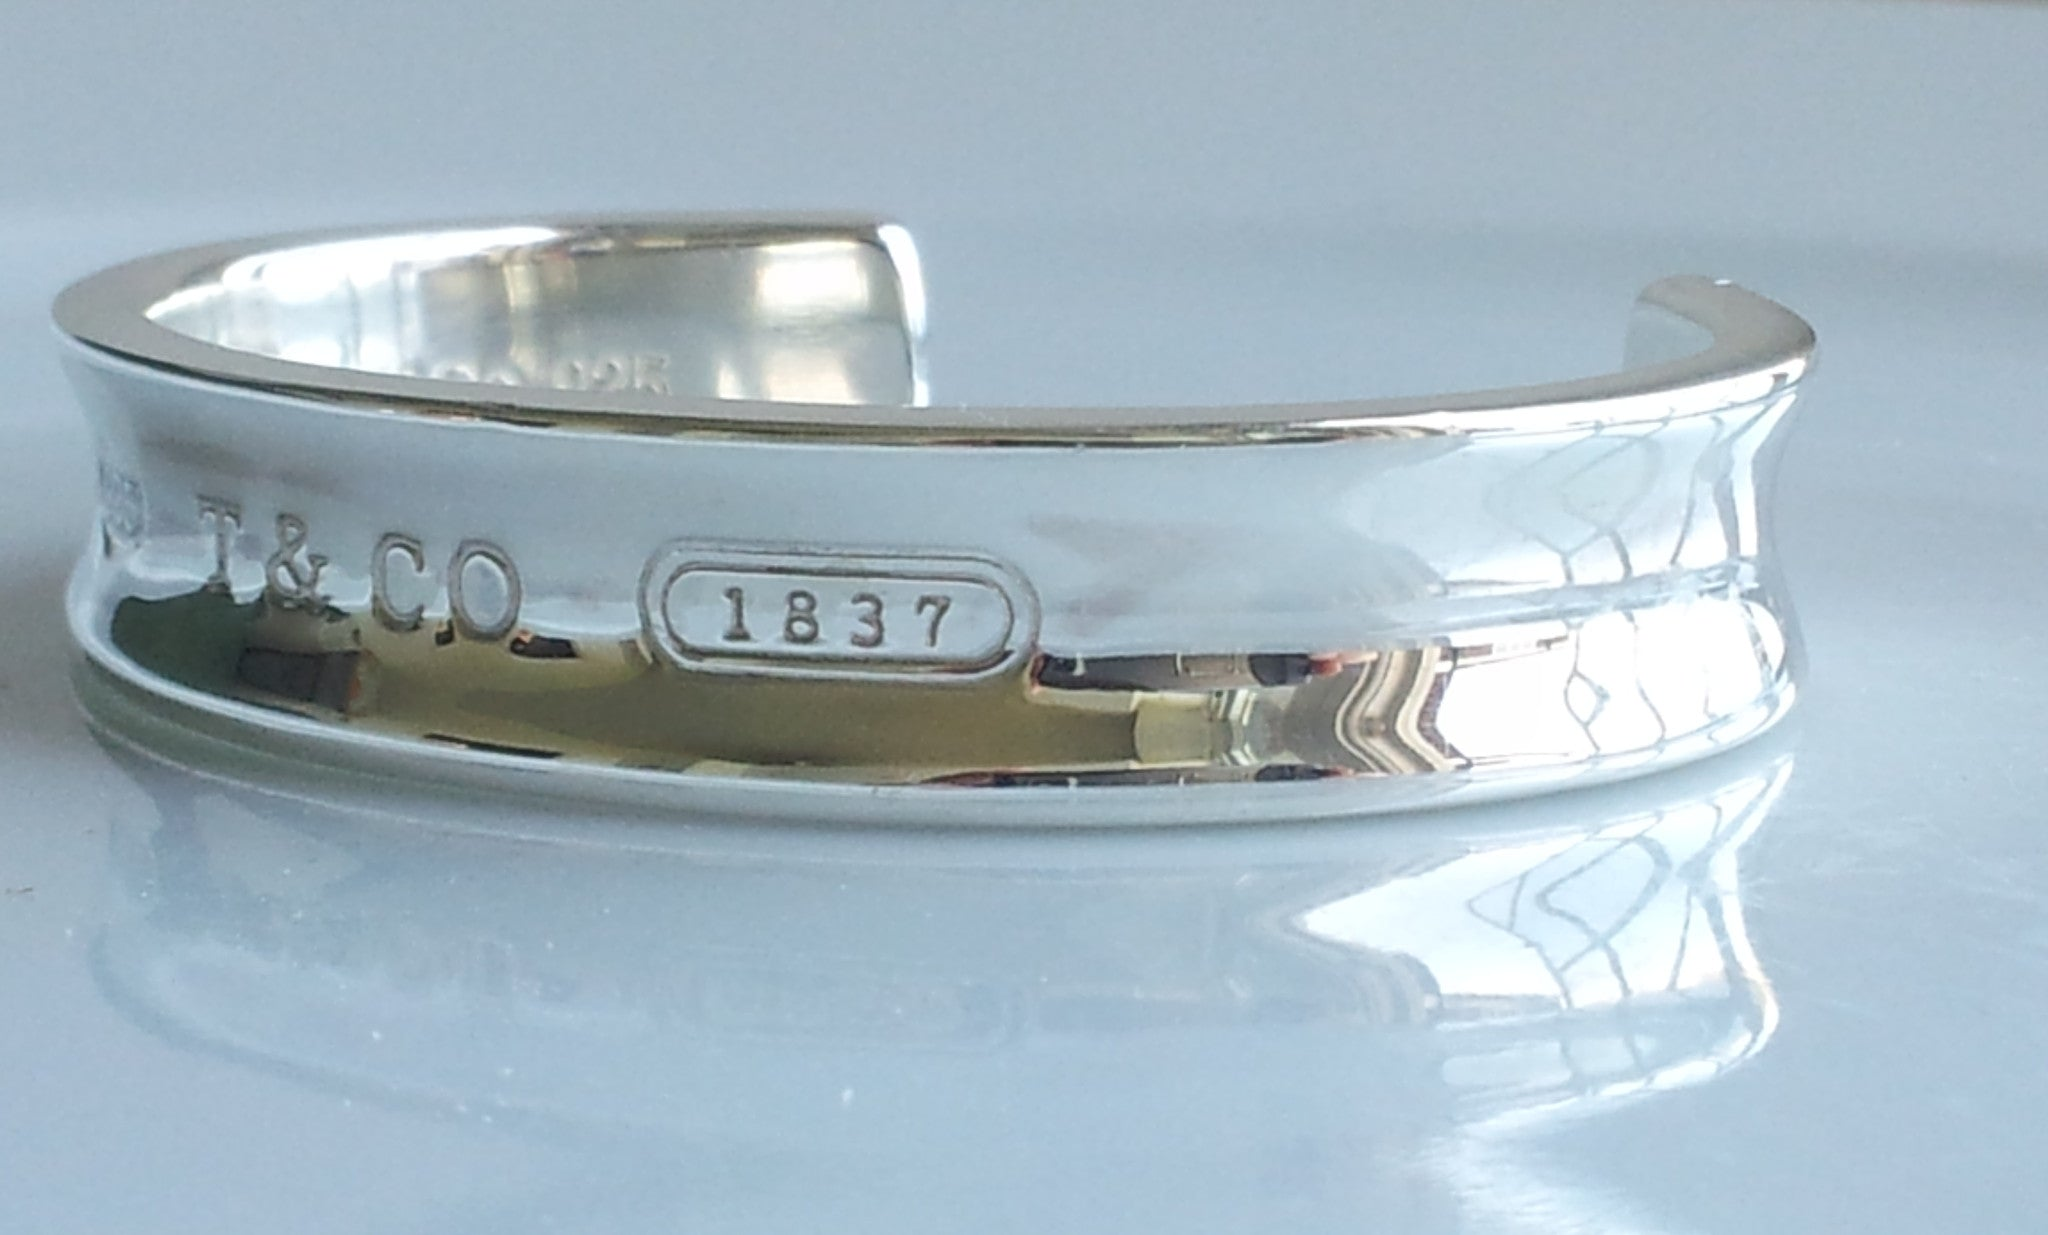 c6ff7682b Tiffany & Co 1837 Sterling Silver Cuff Bracelet Bangle Sz 6.5 RRP £360